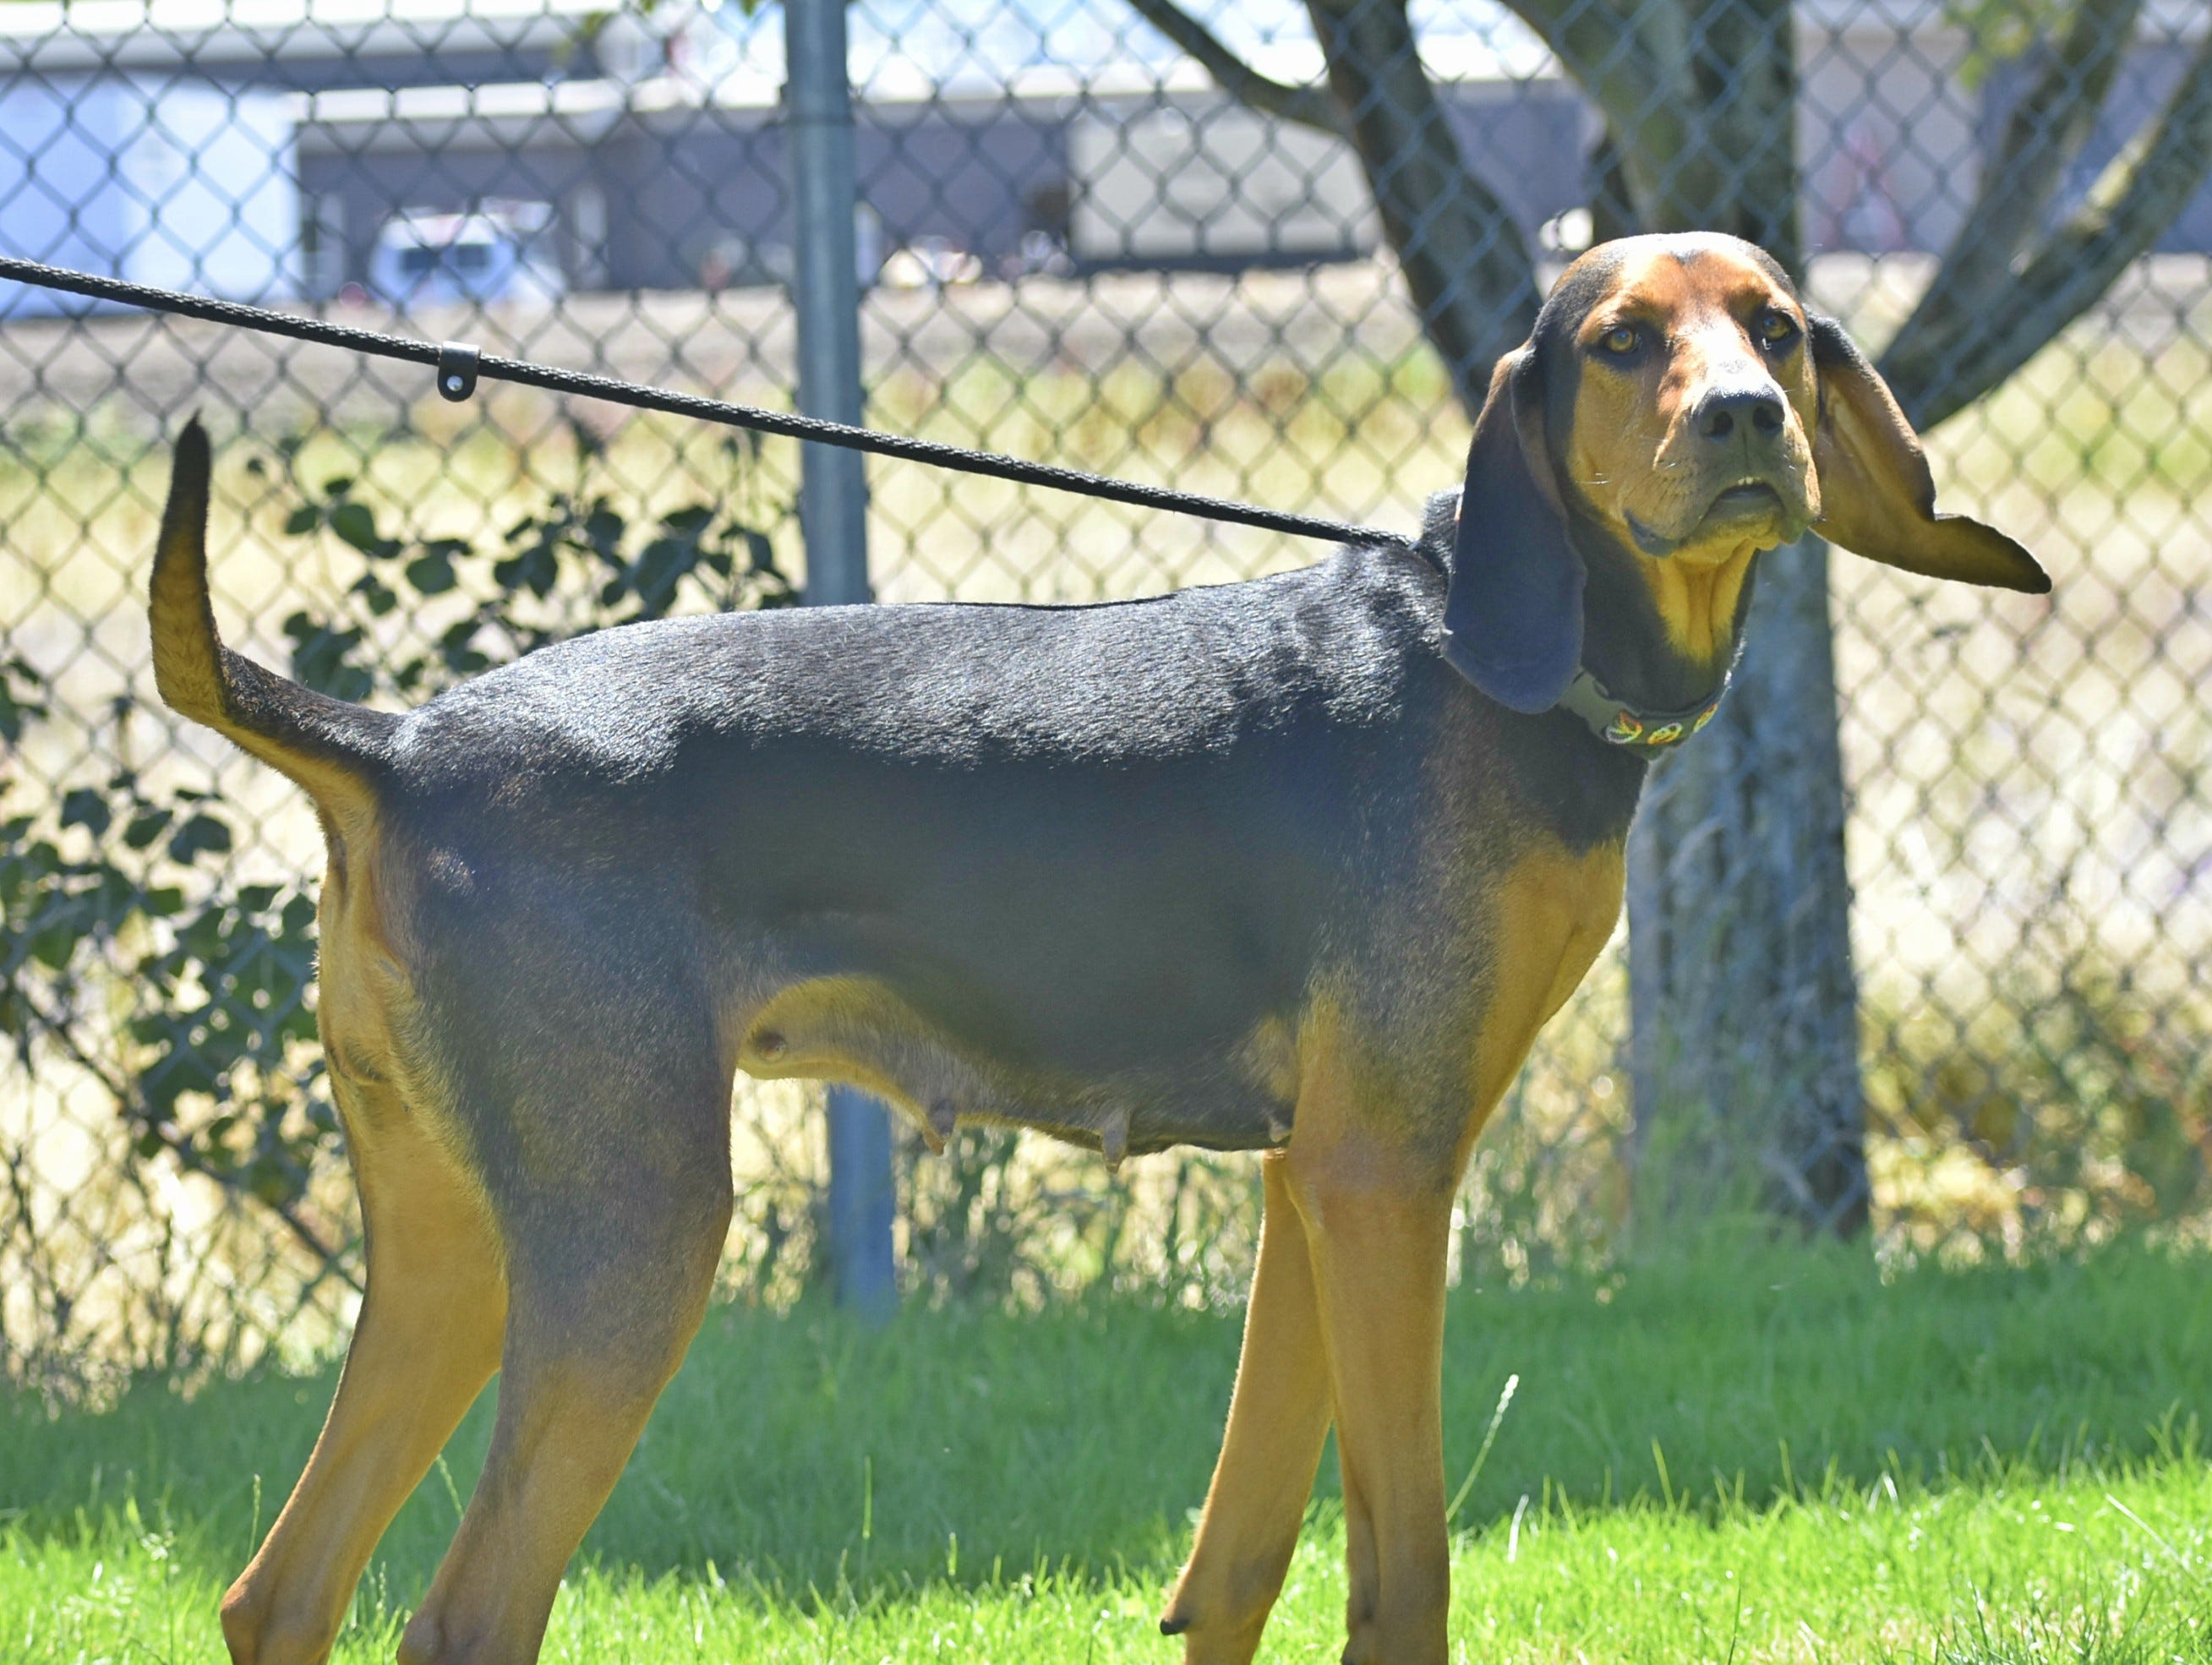 Dixie is a young adult female black and white Coonhound/Walker mix. She is a big puppy who gives slobbery kisses. Dixie loves playing with toys, going for jogs and hanging with dog friends. She has never met a person she didn't like. Contact Marion County Dog Services at 503-588-5366 or go to www.MCDogs.net.